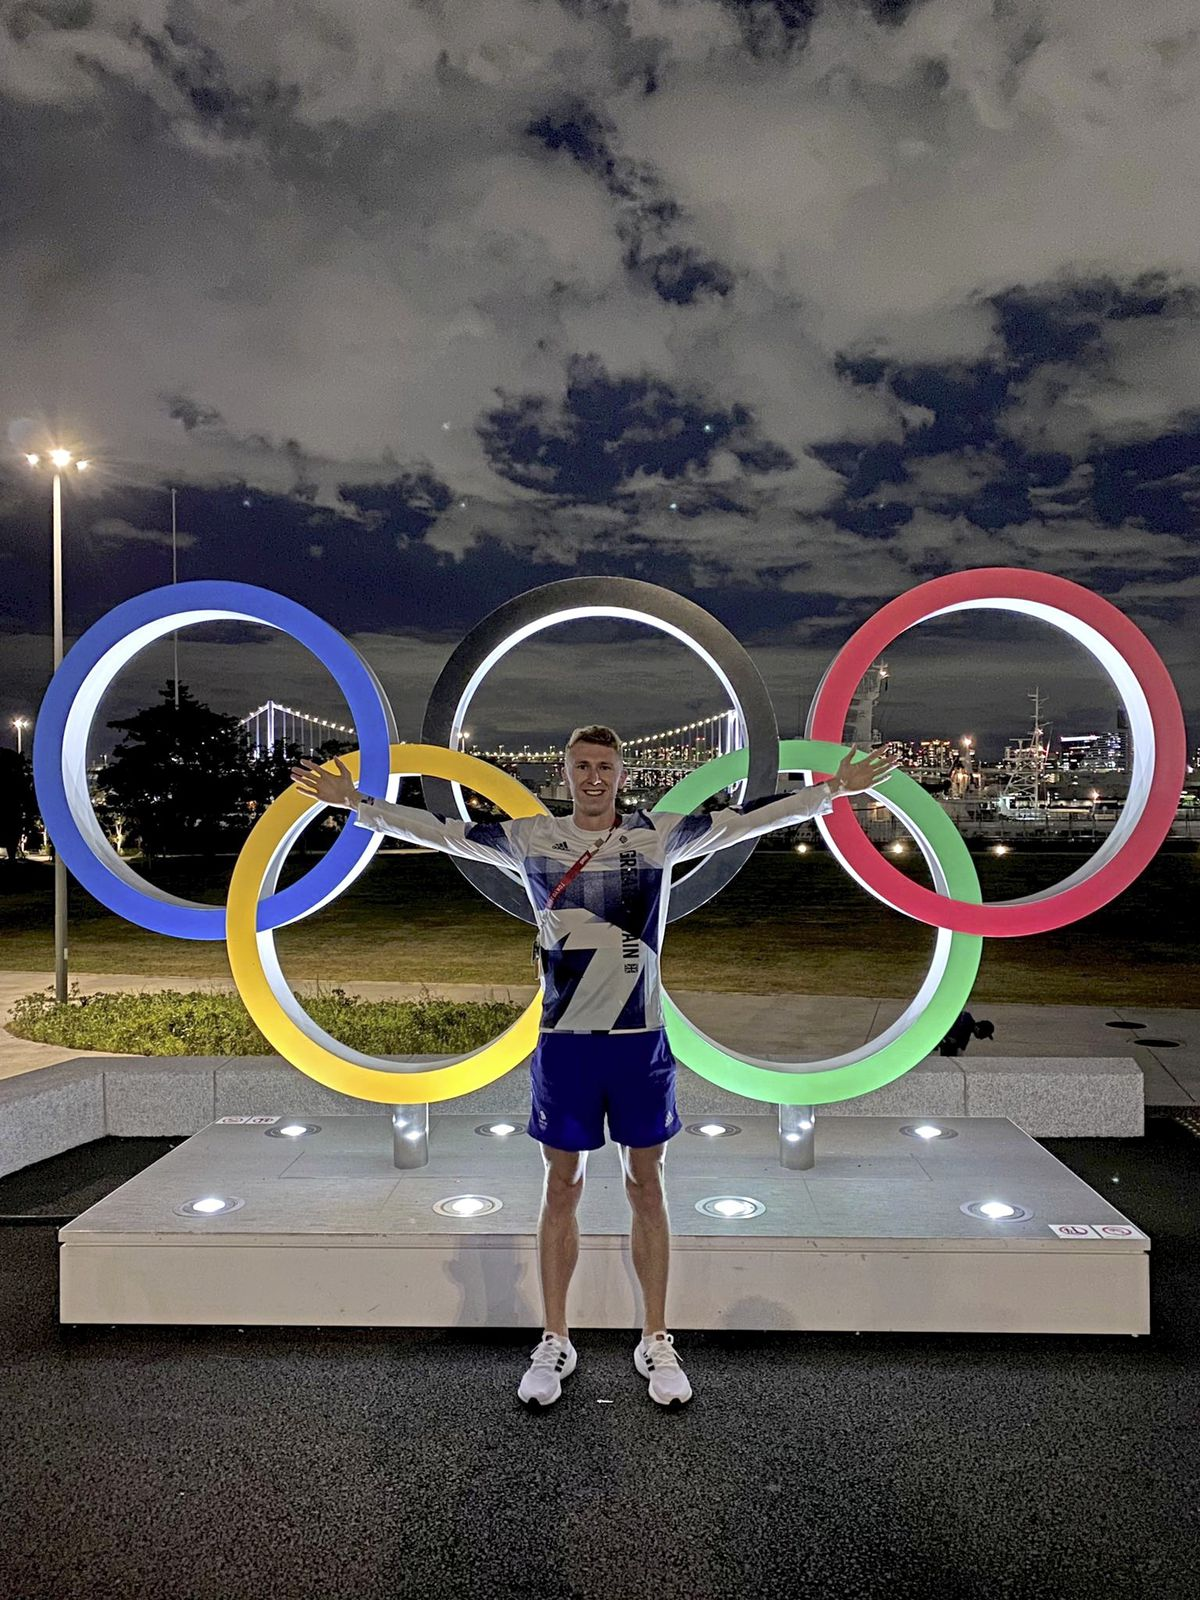 Cameron Chalmers at the Olympic Village in Tokyo. (Picture @CamChalmers400, 29808384)